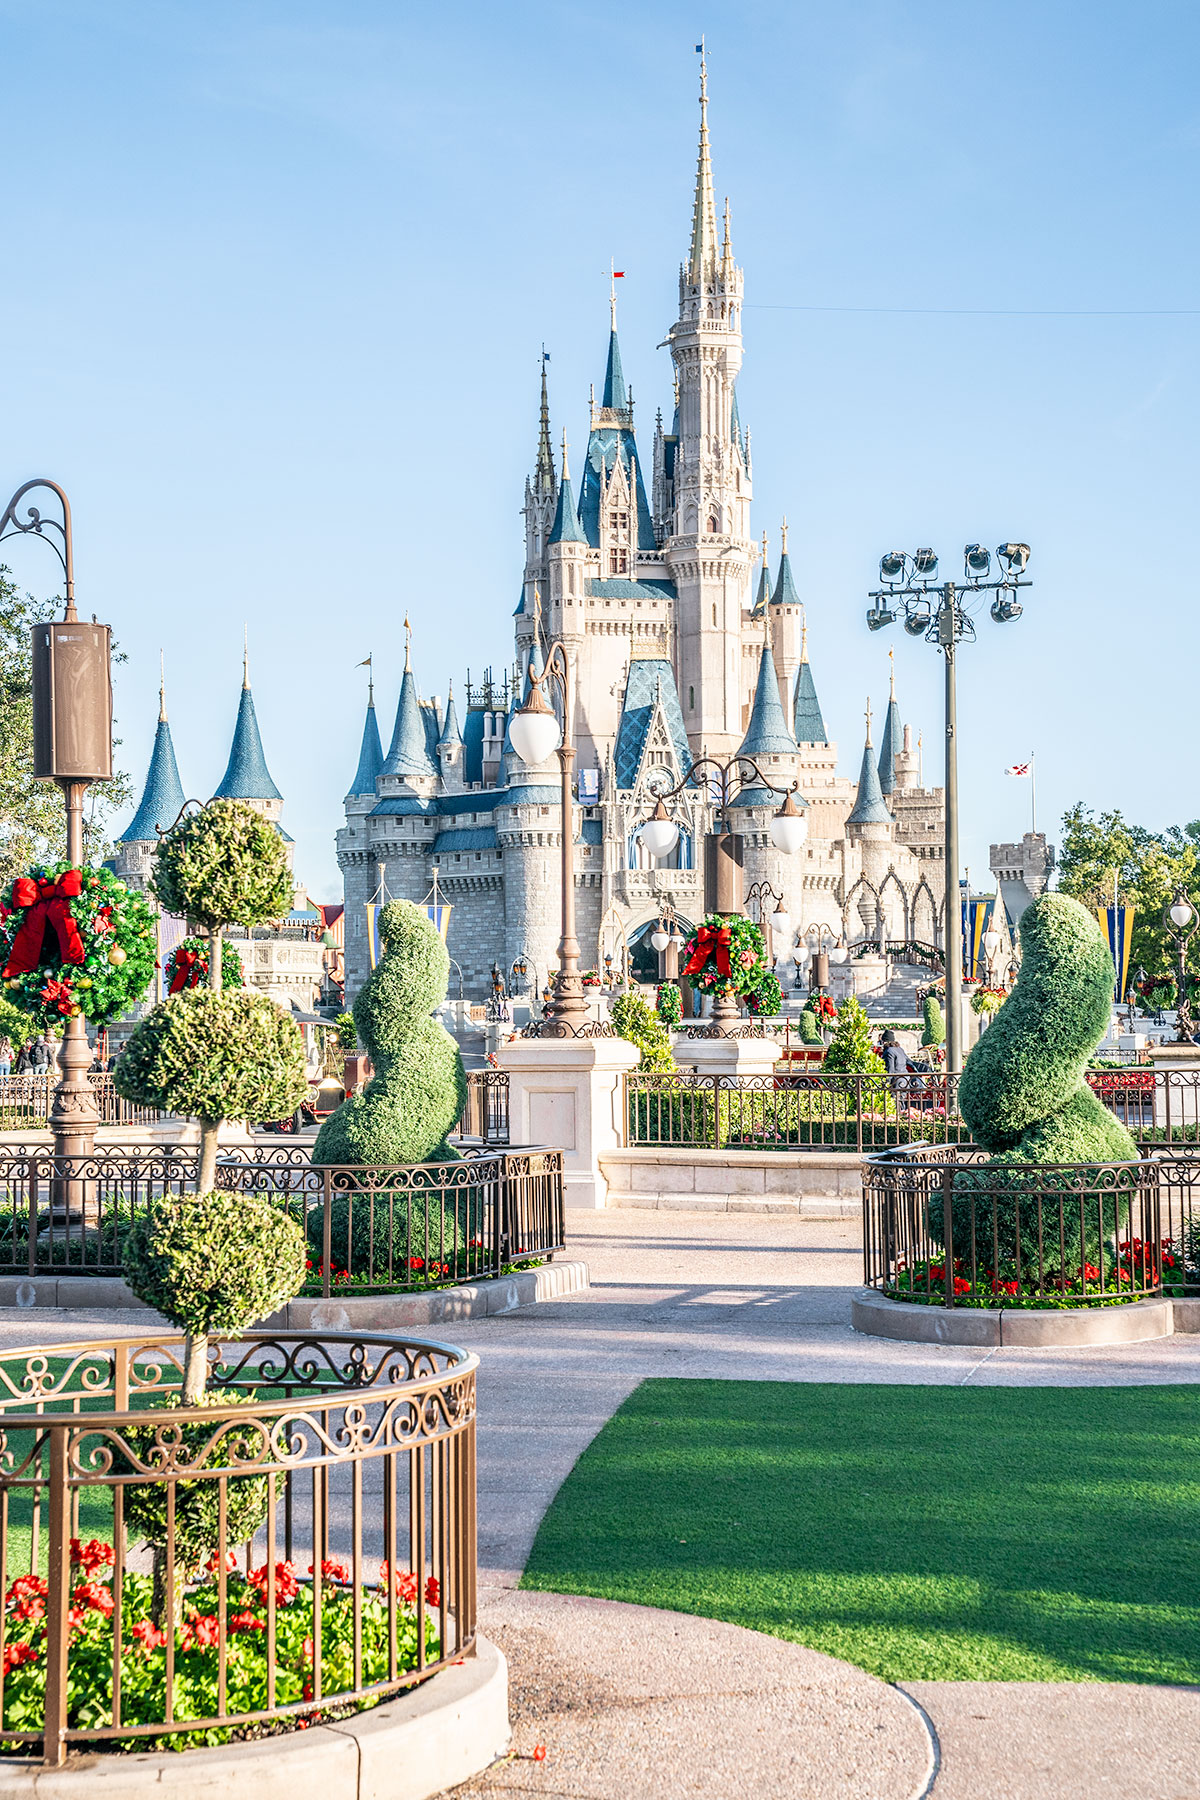 20-Photos-to-Inspire-You to-Visit-Walt-Disney-World-at-Christmas